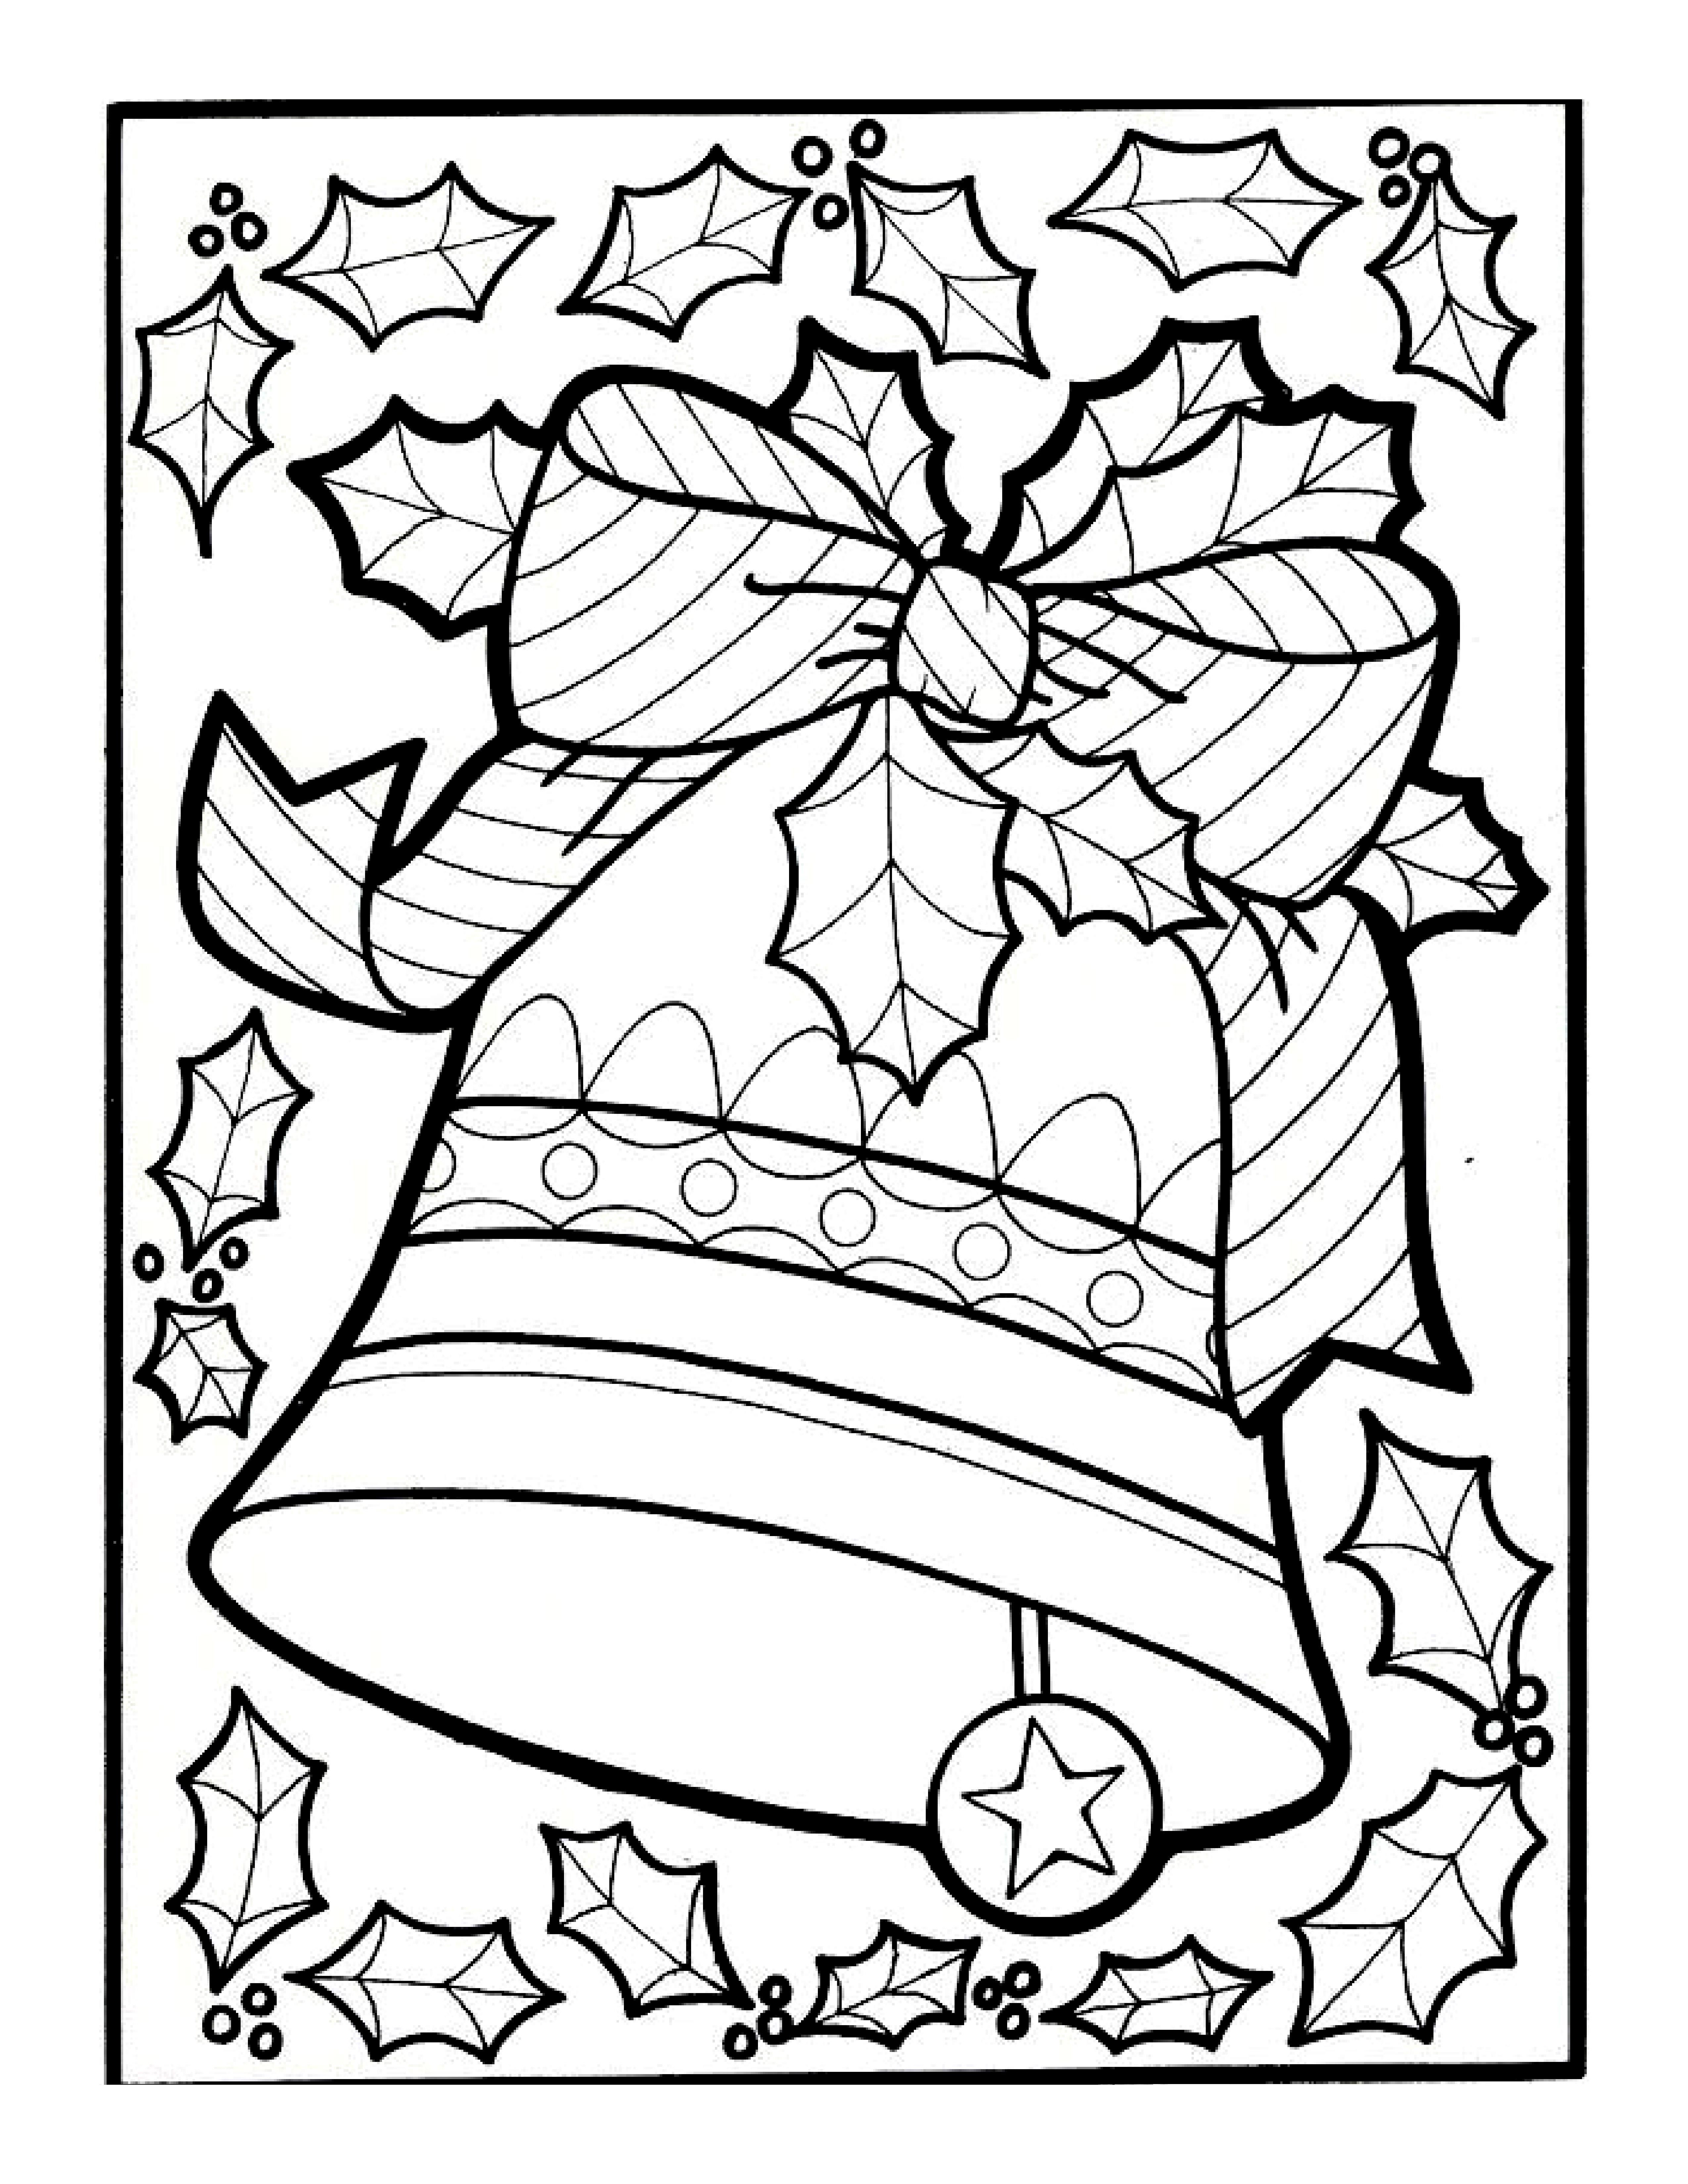 Christmas Coloring Pages For Teachers With Pin By William Groeneveld On LET S DOODLE